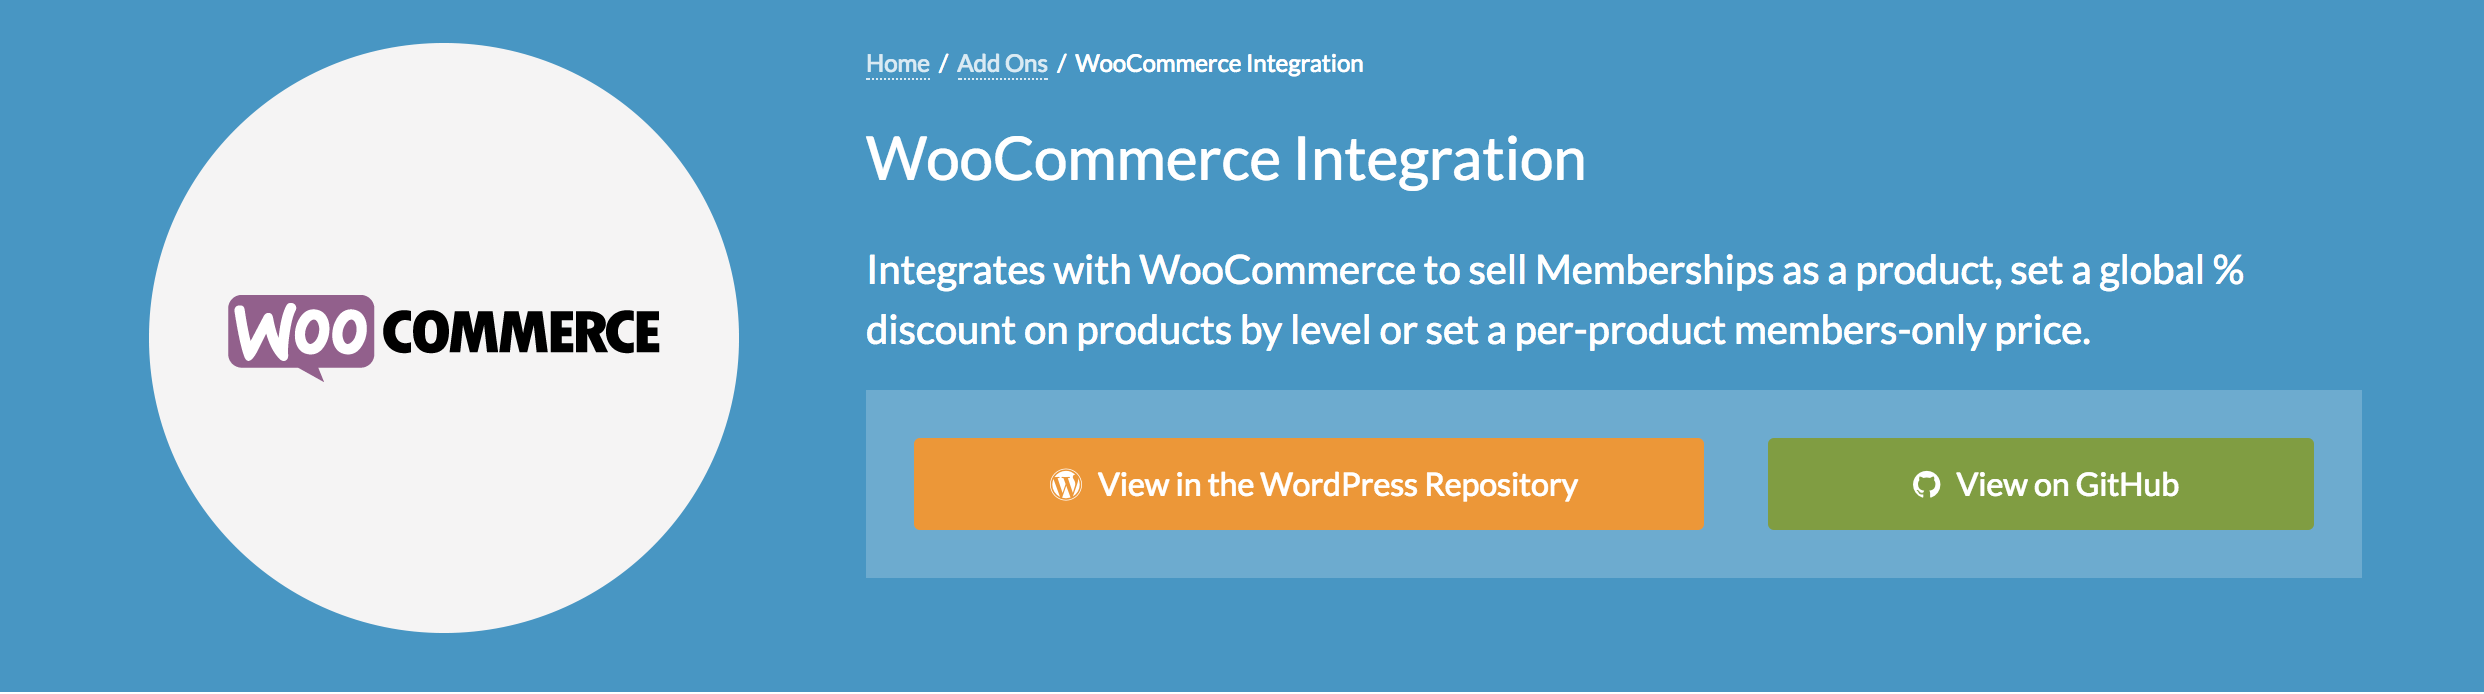 Use WooCommerce to Sell Memberships with Your Payment Gateway of